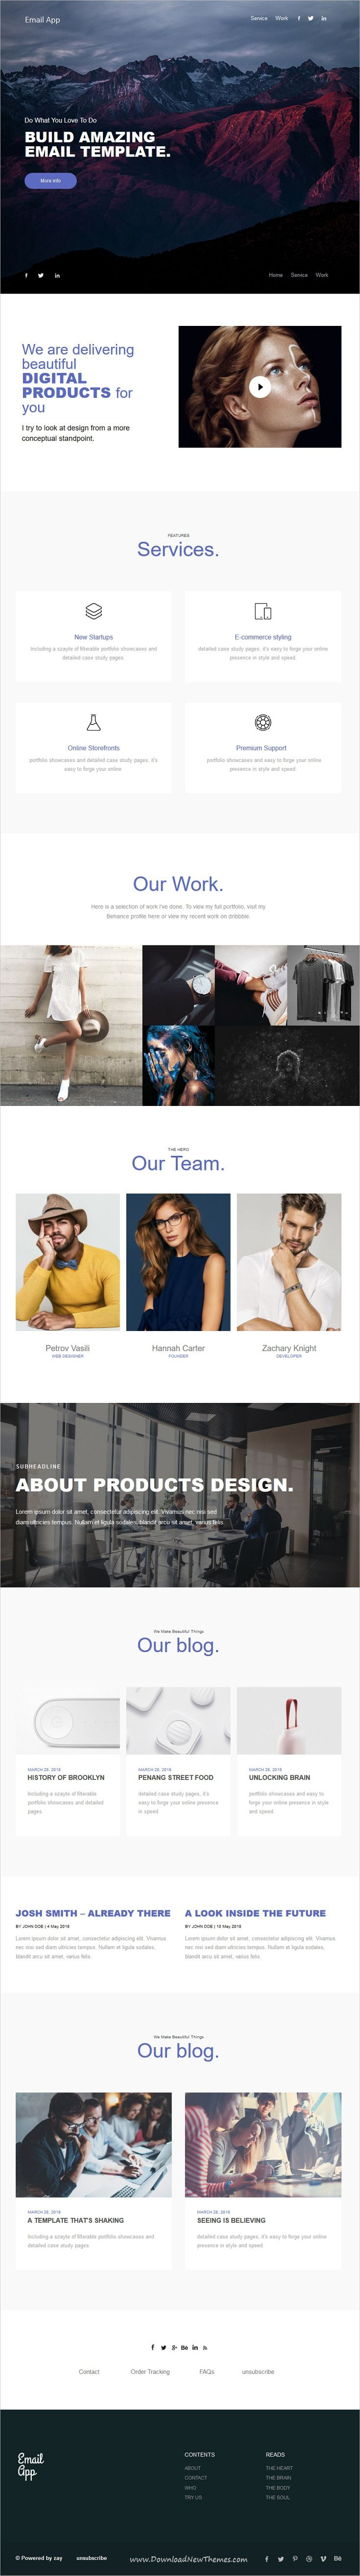 Email App is clean and modern minimal design 5in1 responsive #email #newsletter #template for viral marketing with 200+ modules to live preview & download click on image or Visit  #emailmarketing